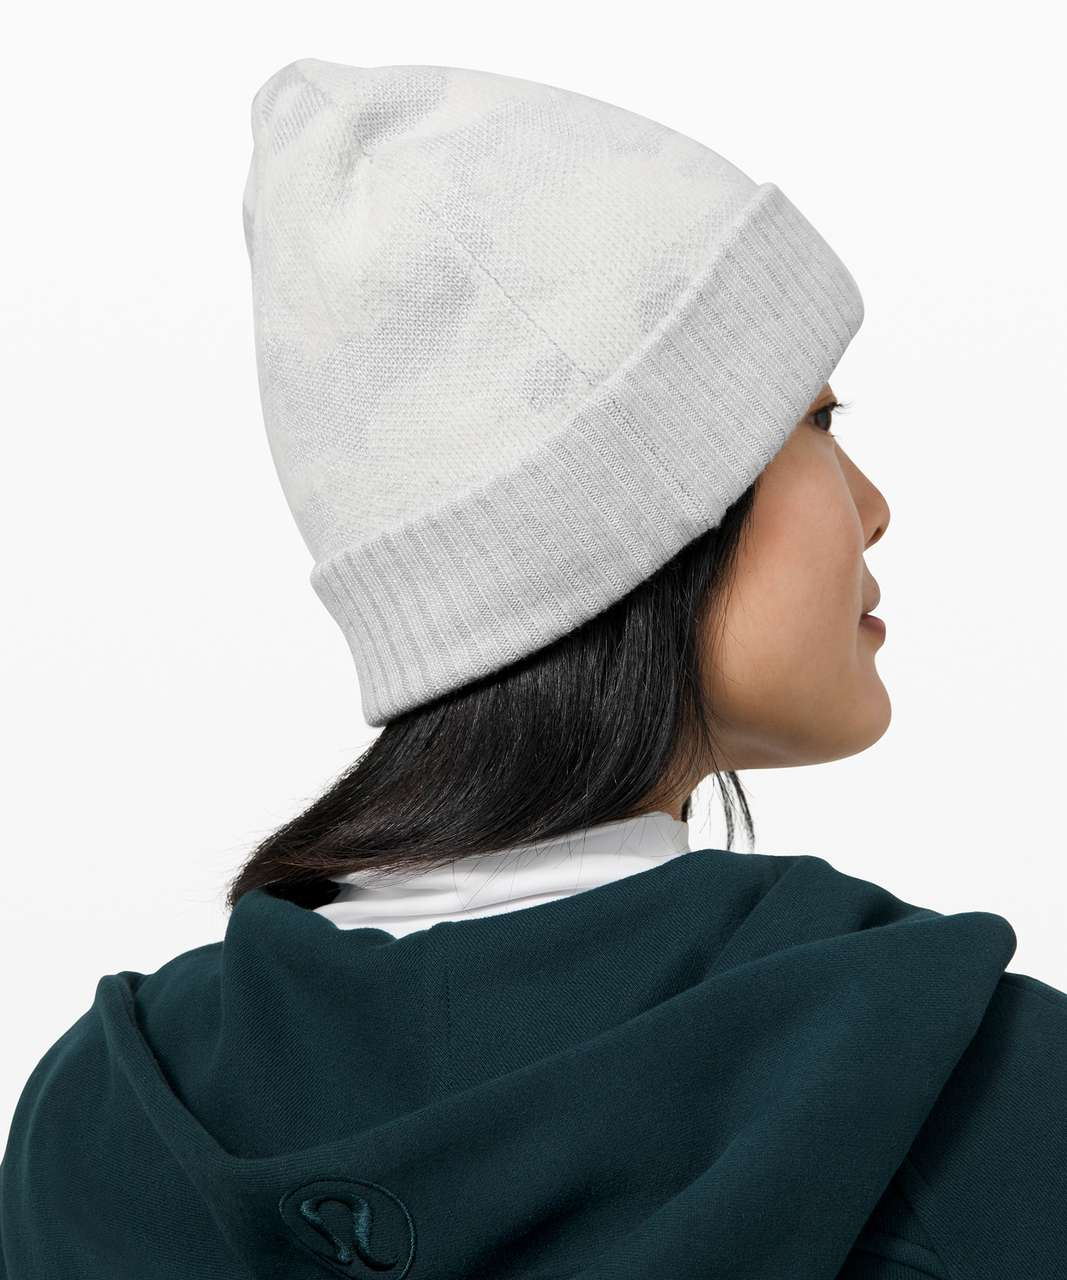 Lululemon Room for Warmth Beanie - Heathered Core Ultra Light Grey / Antique White